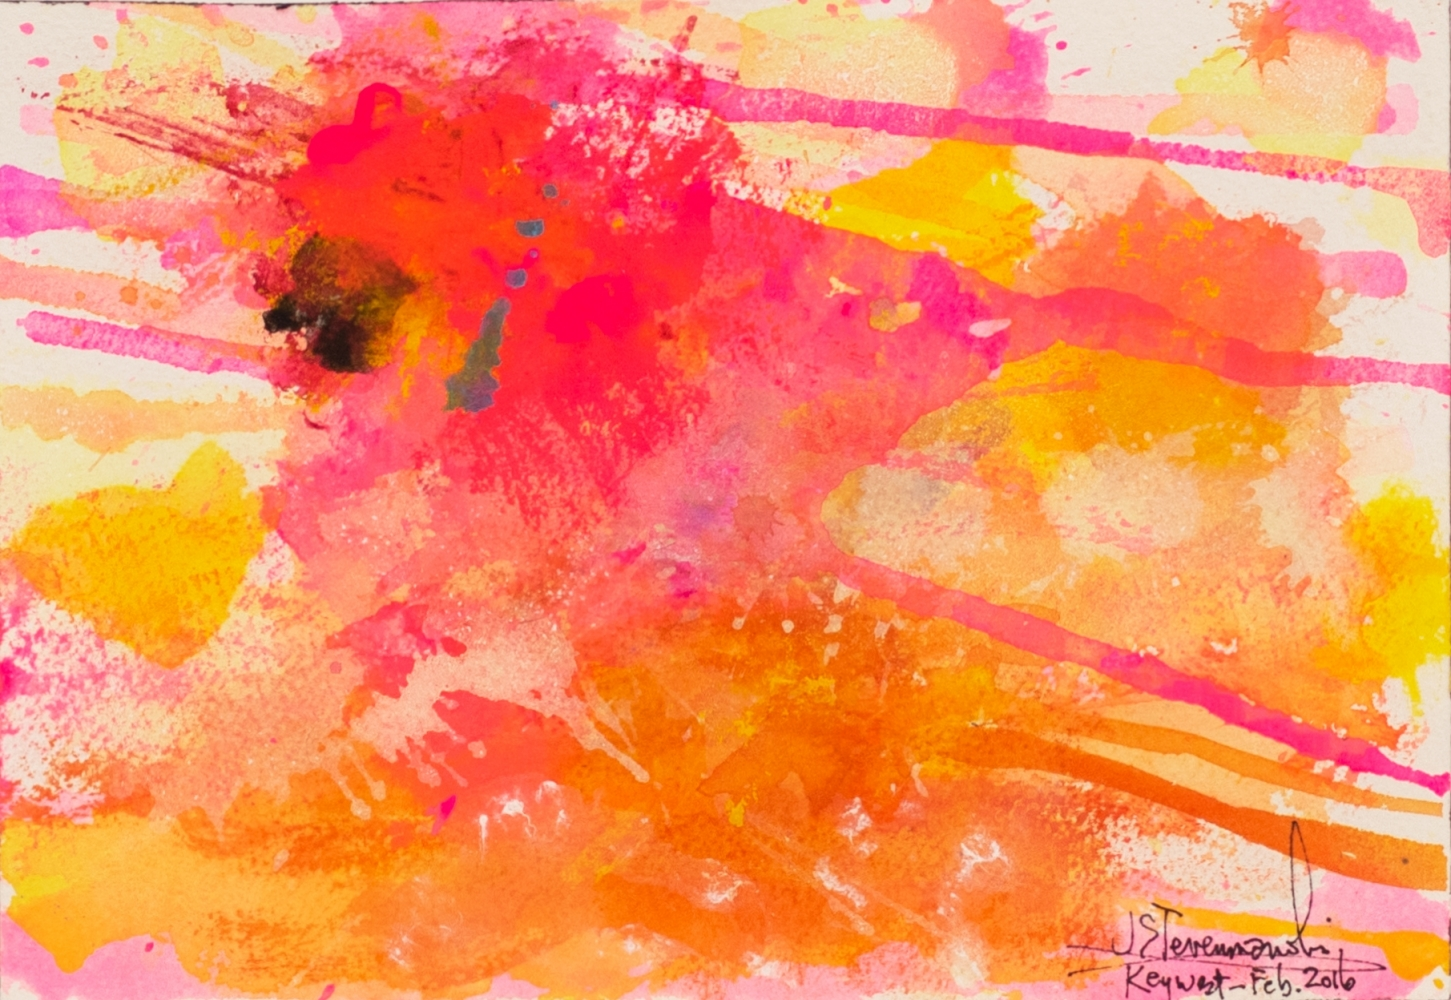 J. Steven Manolis, Flamingo 1832-2016 (Key West) 07.10.03, watercolor painting on paper, 7 x 10 inches, Pink and orange Abstract Art, Tropical Watercolor paintings for sale at Manolis Projects Art Gallery, Miami, Fl